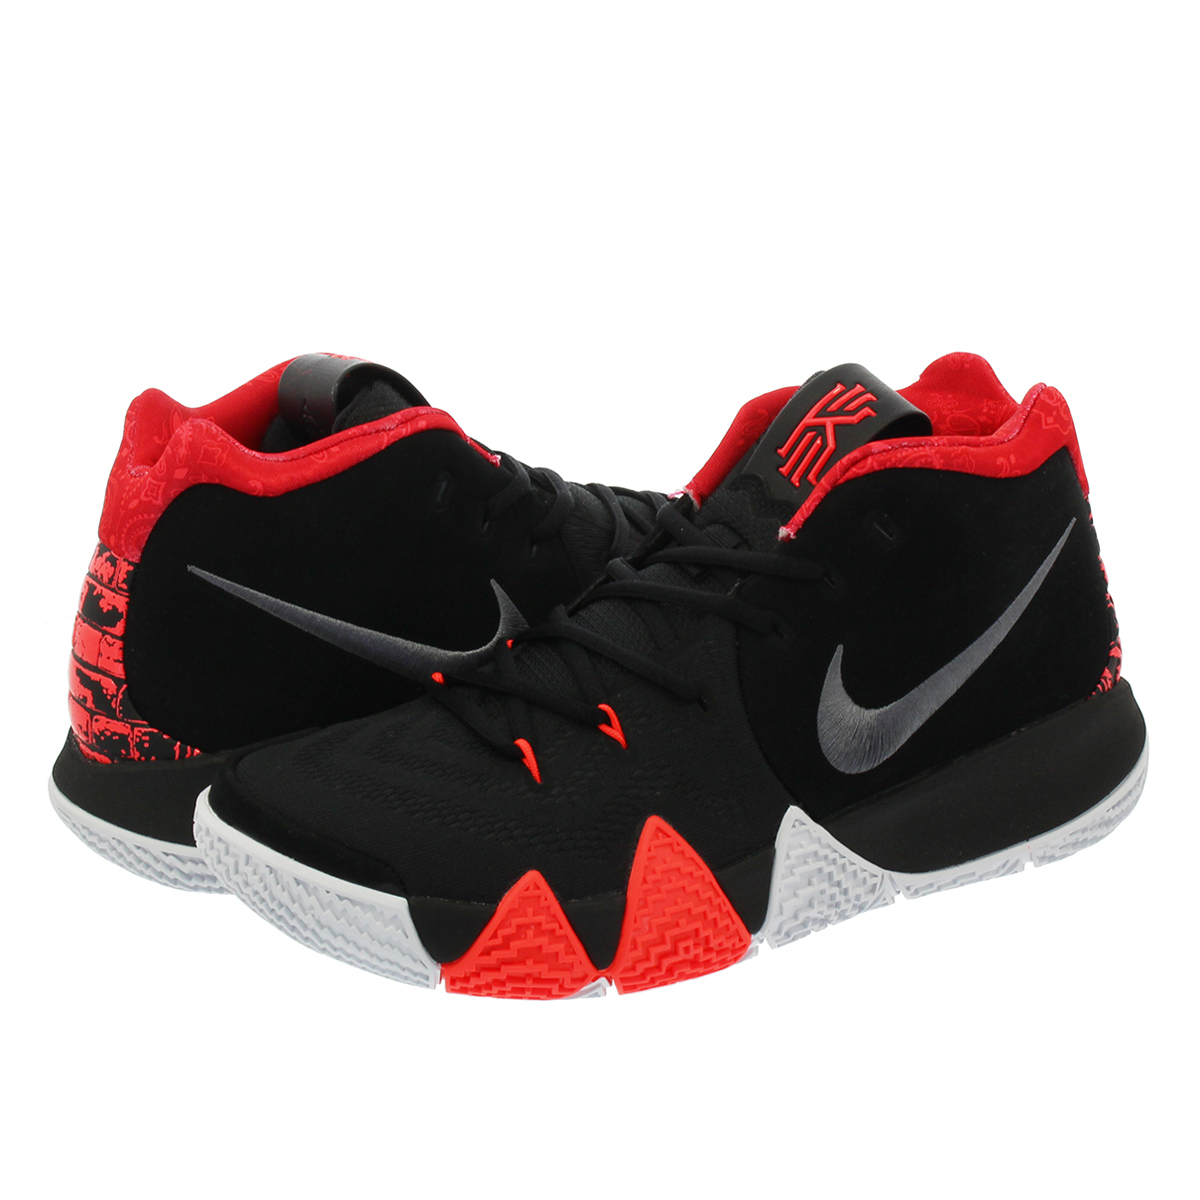 quality design 4f885 1afd0 NIKE KYRIE 4 Nike chi Lee 4 BLACK/UNIVERSITY RED/TOUR YELLOW/DARK GREY